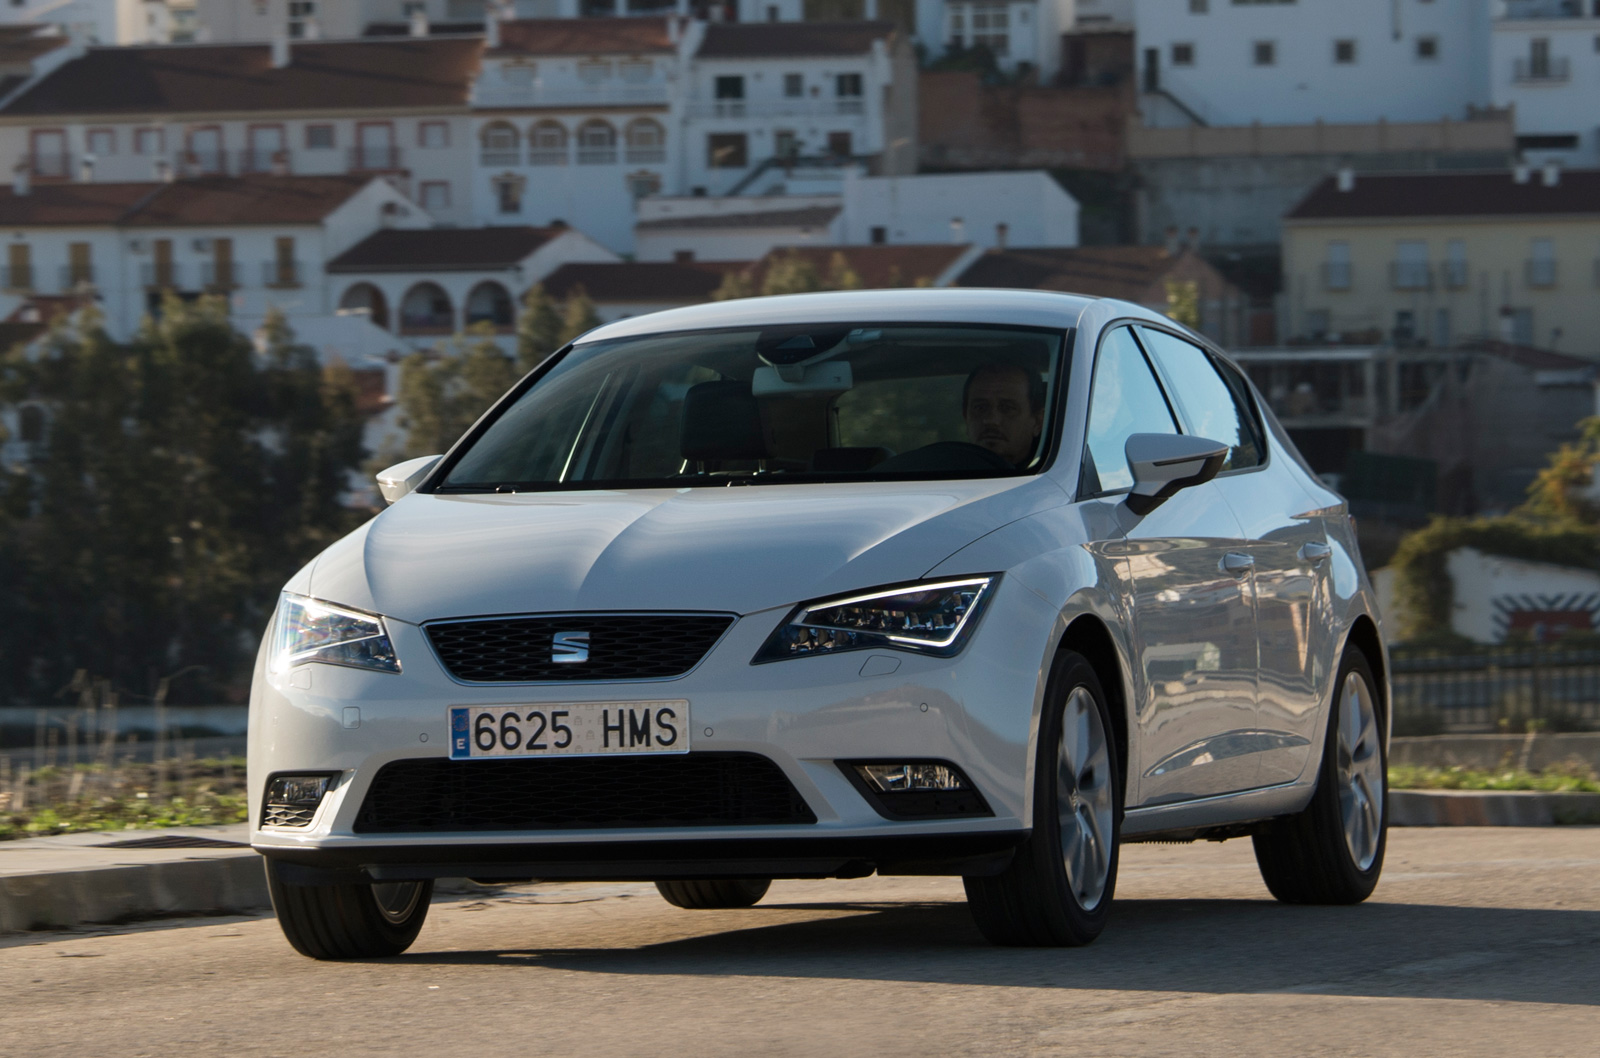 first drive review 2013 seat leon 1 4 tsi autocar. Black Bedroom Furniture Sets. Home Design Ideas